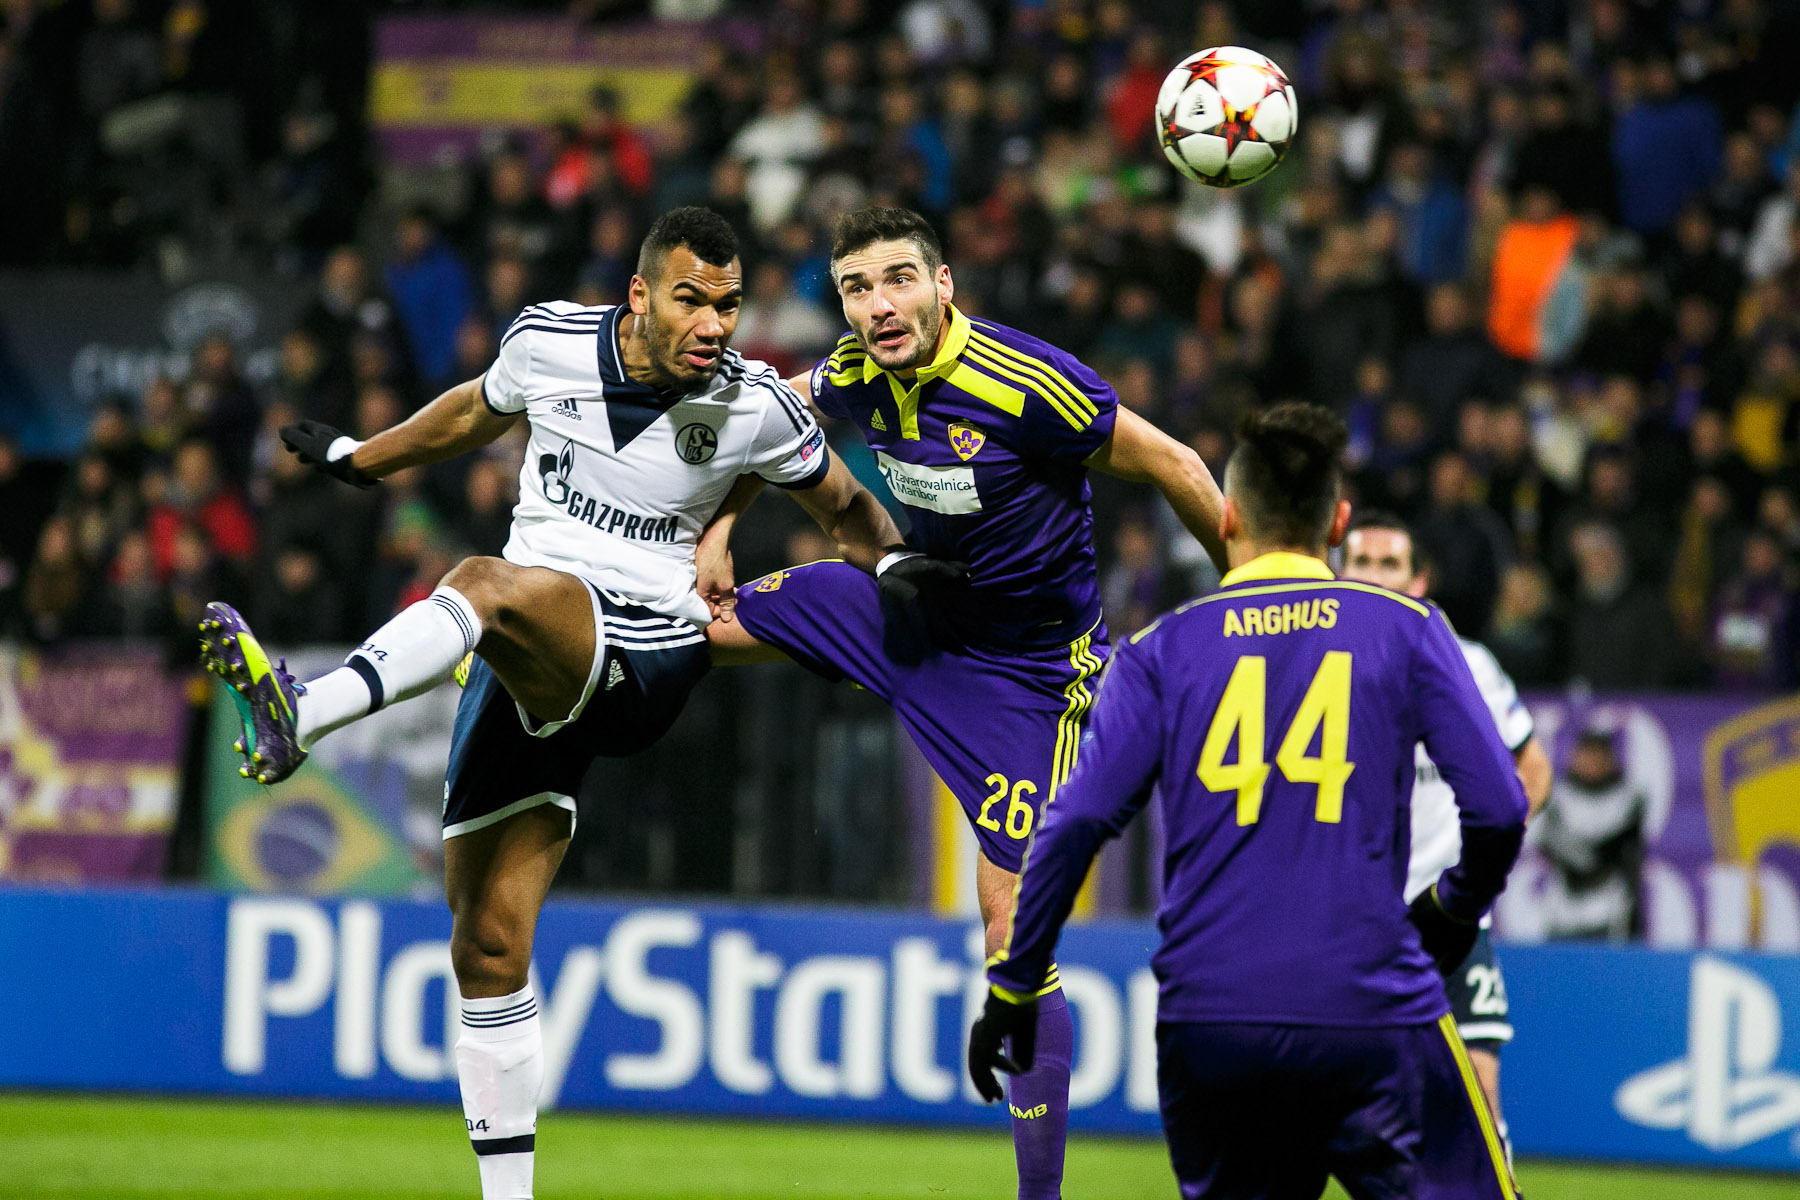 Eric Maxim Choupo-Moting of FC Schalke 04 is challenged by Aleksander Rajcevic of NK Maribor during the UEFA Champions League Group G match on December 10 in Maribor, Slovenia.